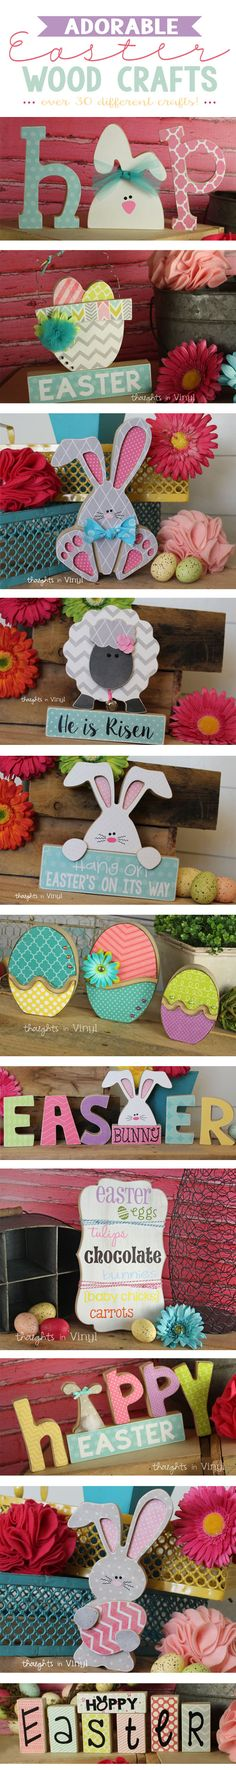 Adorable Wooden Easter Crafts, Cute Bunnies, Wooden Easter Letters.